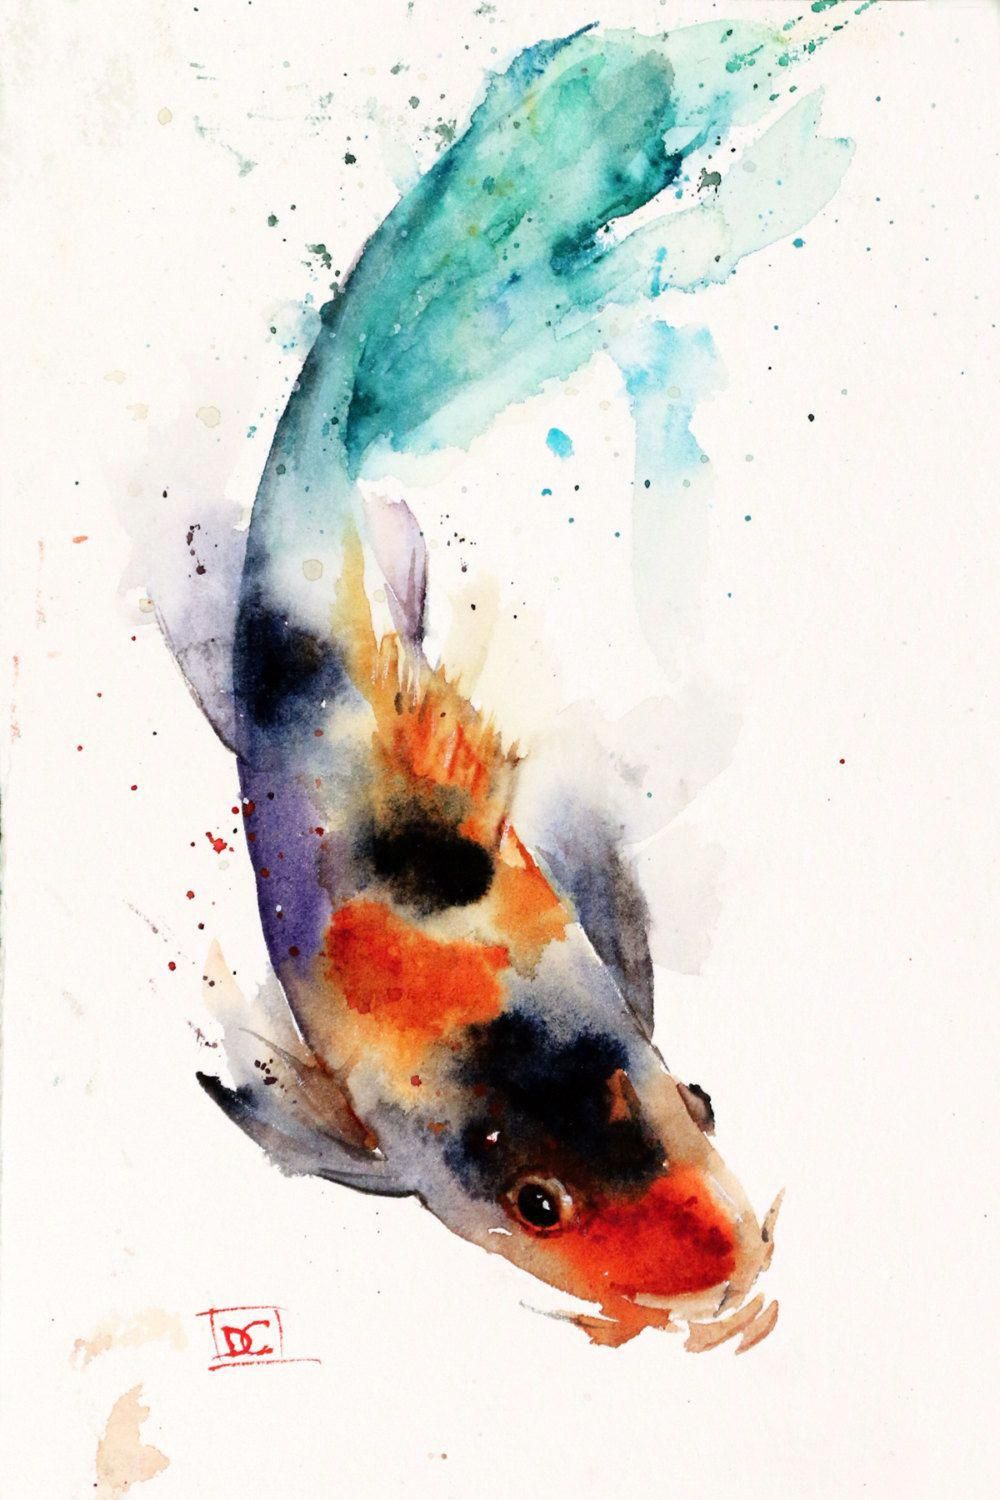 Koi Signed And Numbered Giclee Print From An Original Koi